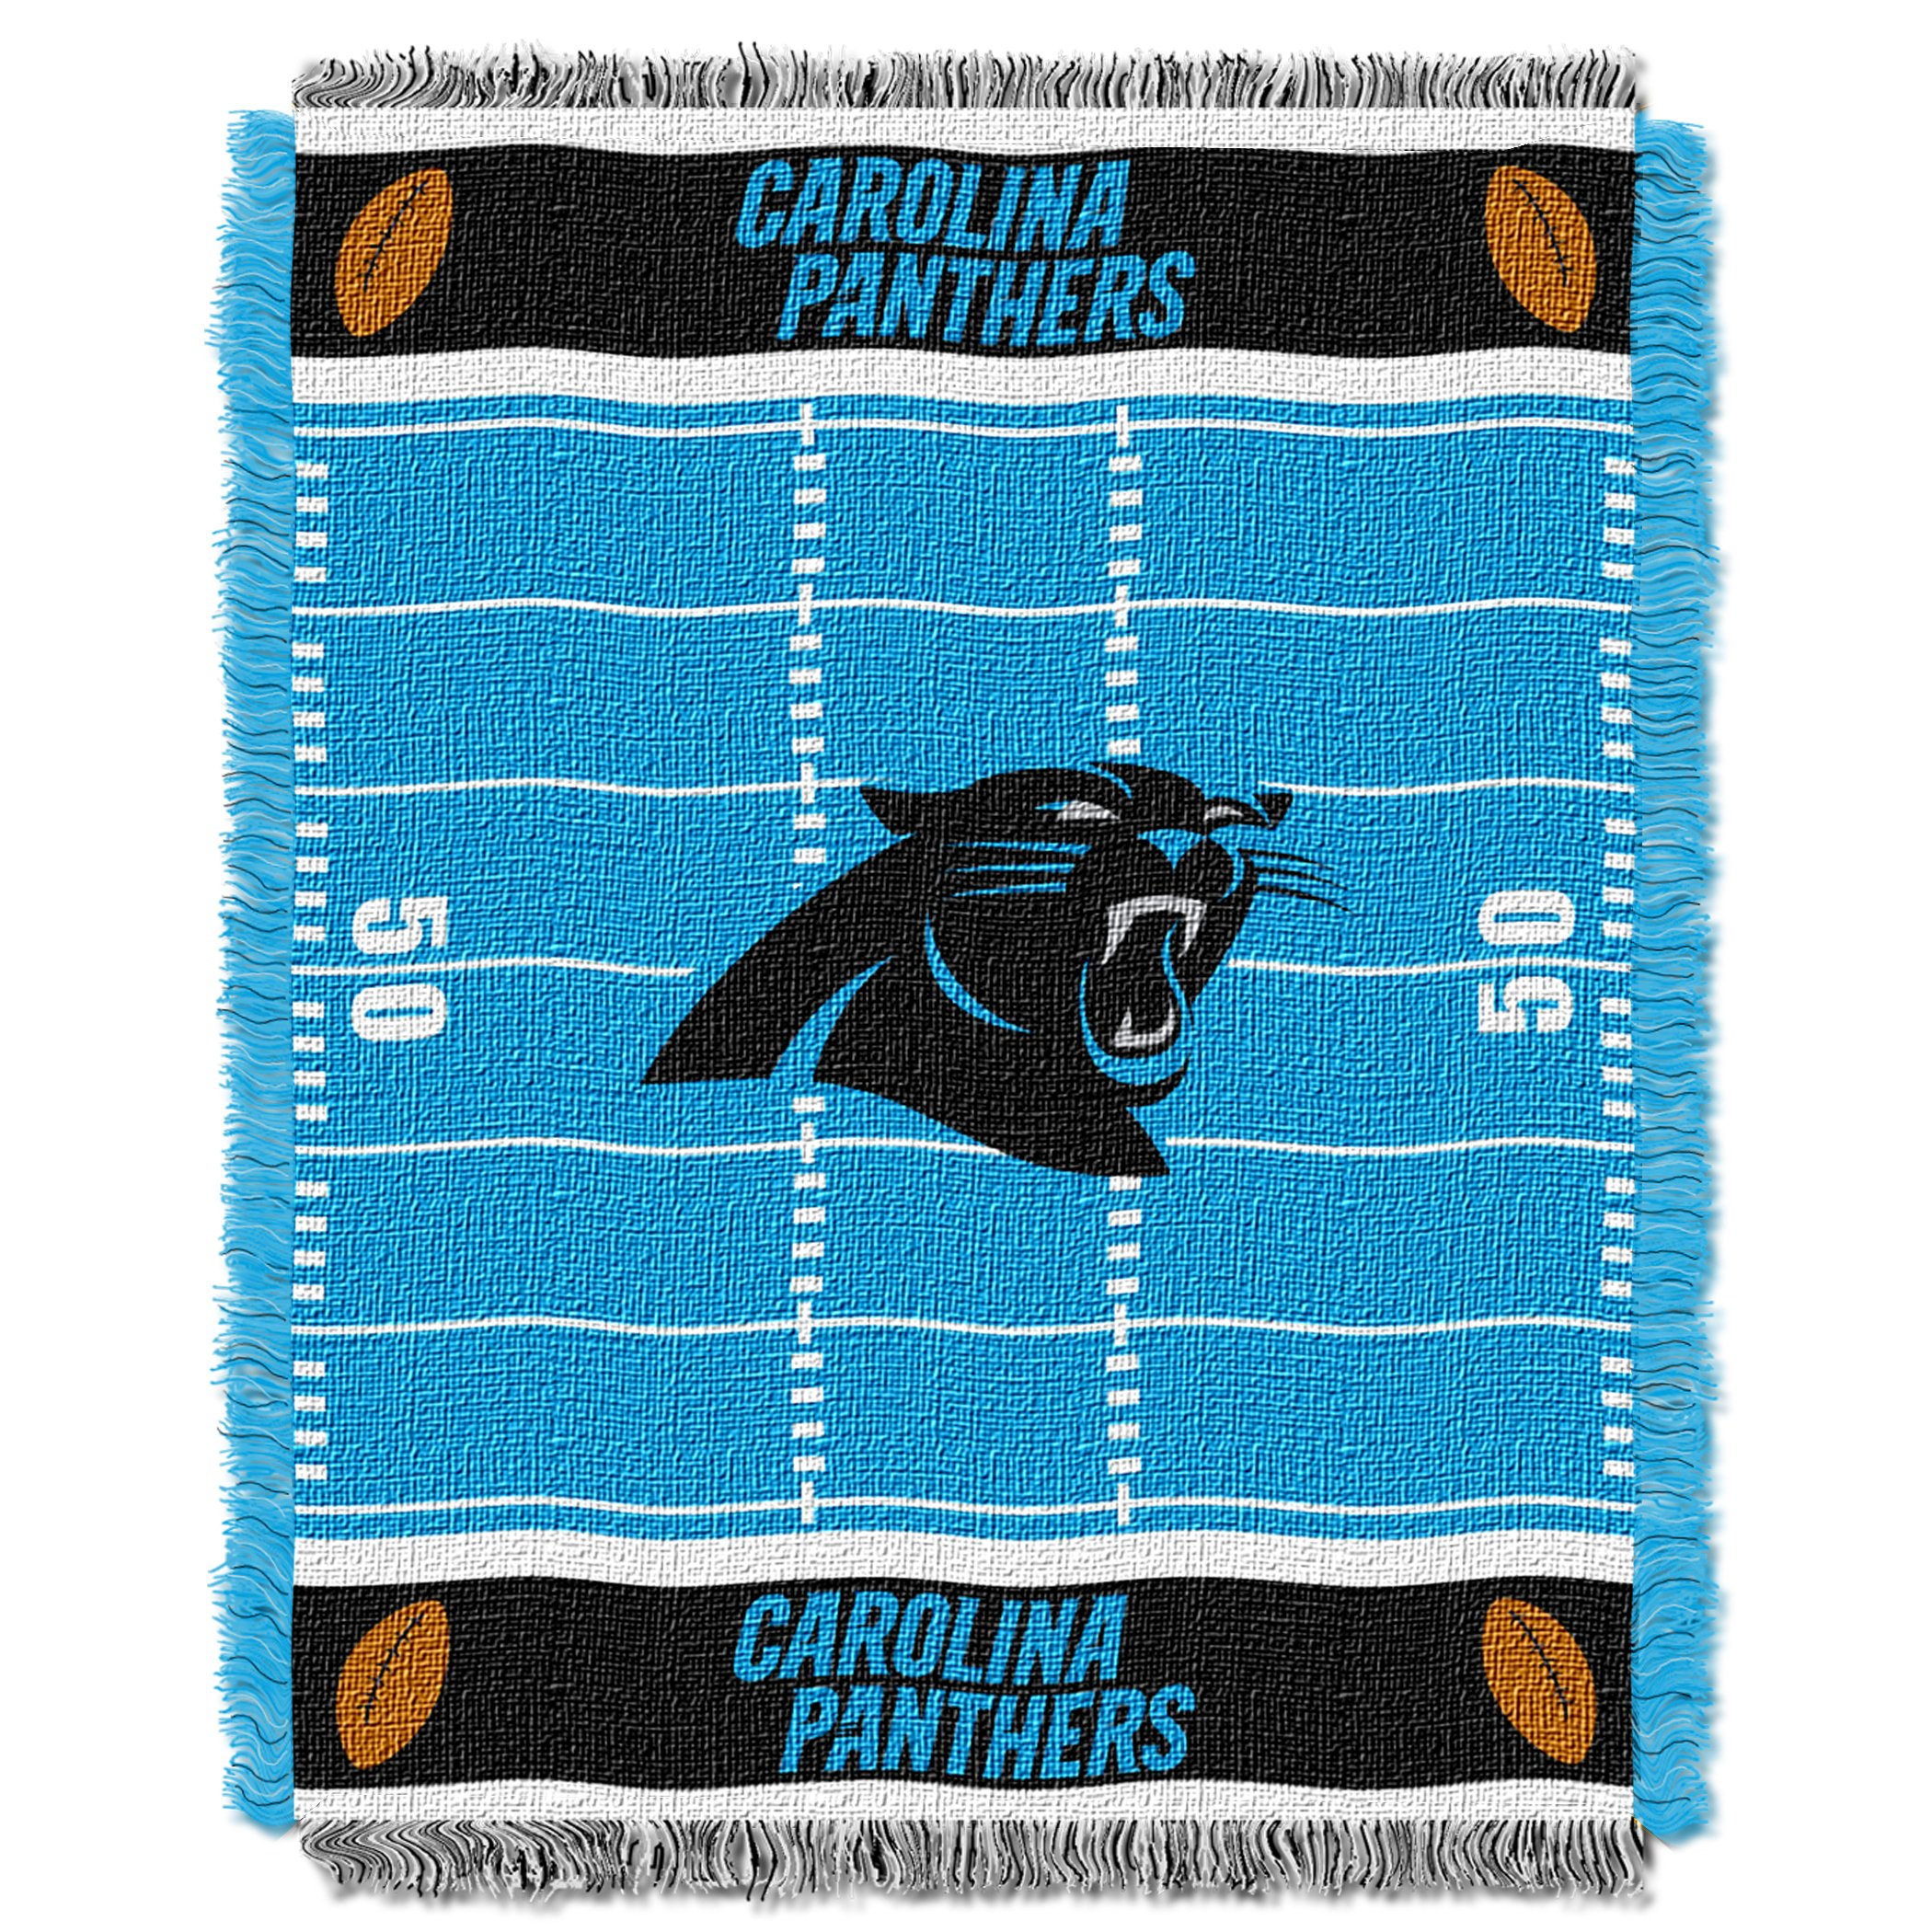 The Northwest Company Officially Licensed NFL Carolina Panthers Field Bear Woven Jacquard Baby Throw Blanket, 36'' x 46'', Multi Color by The Northwest Company